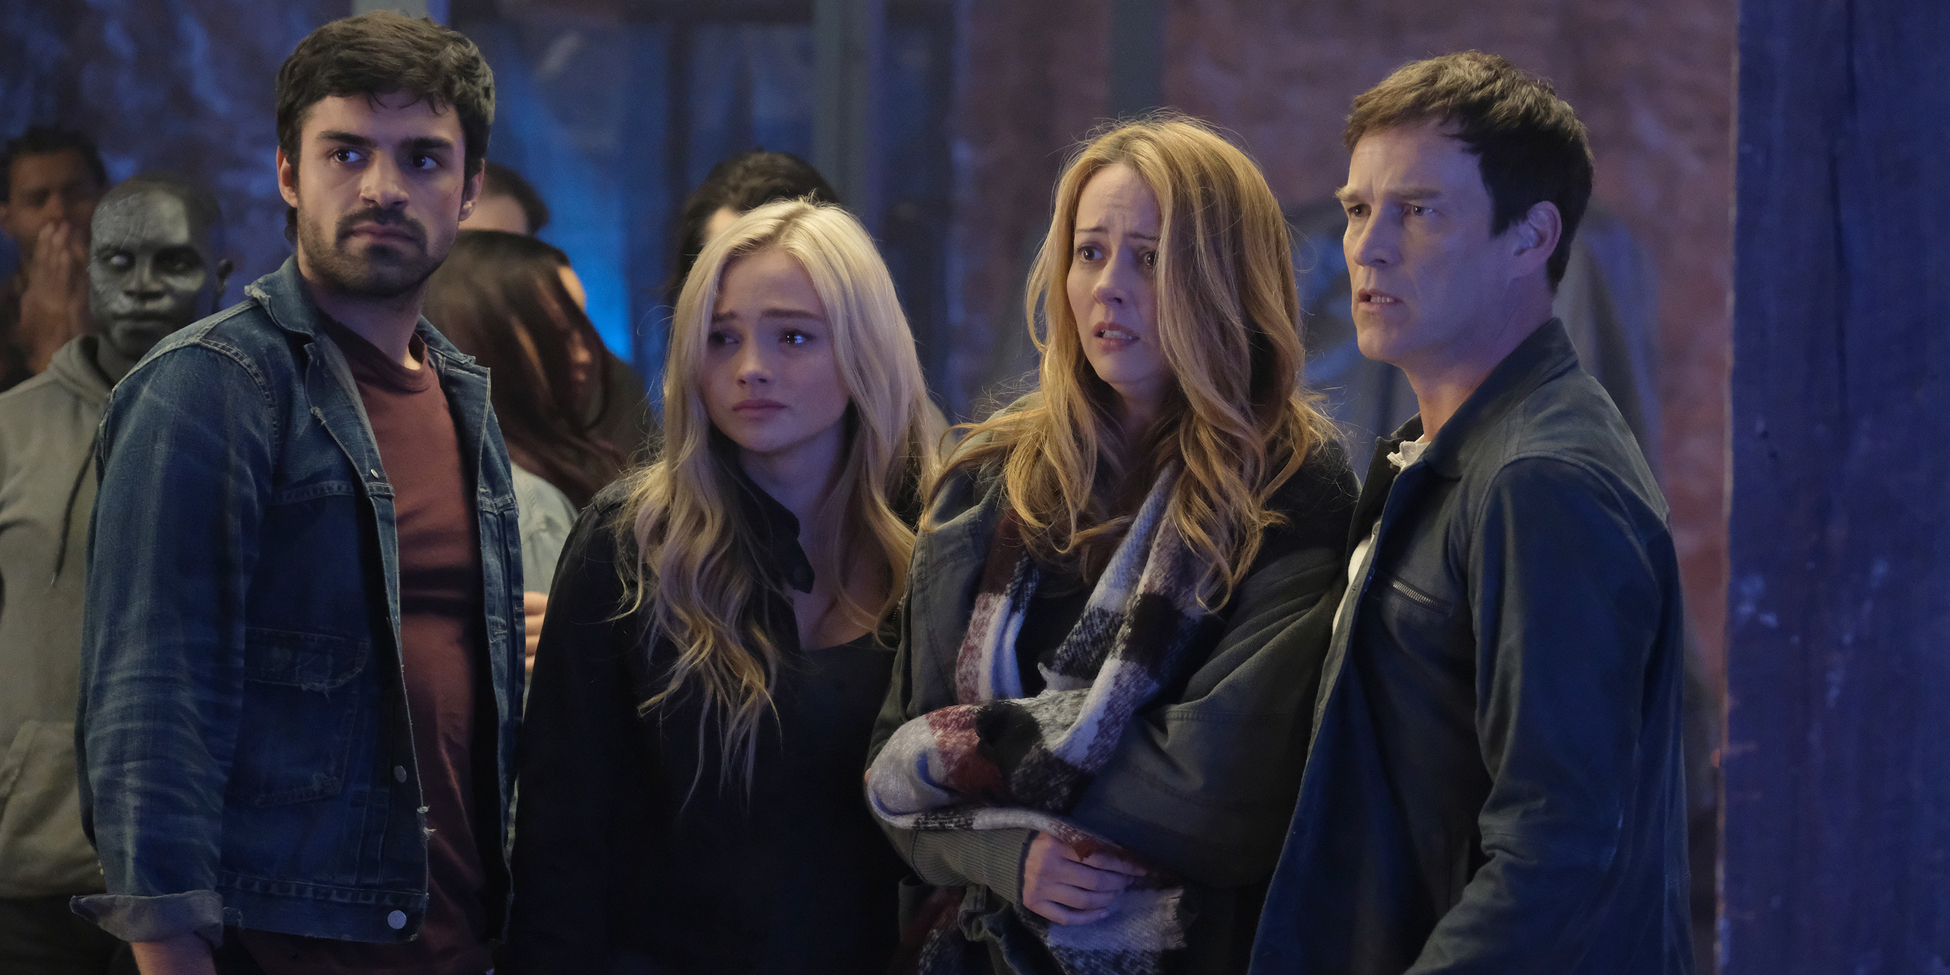 Sean Teale Natalie Alyn Lind Amy Acker and Stephen Moyer in The Gifted Season 1 Finale